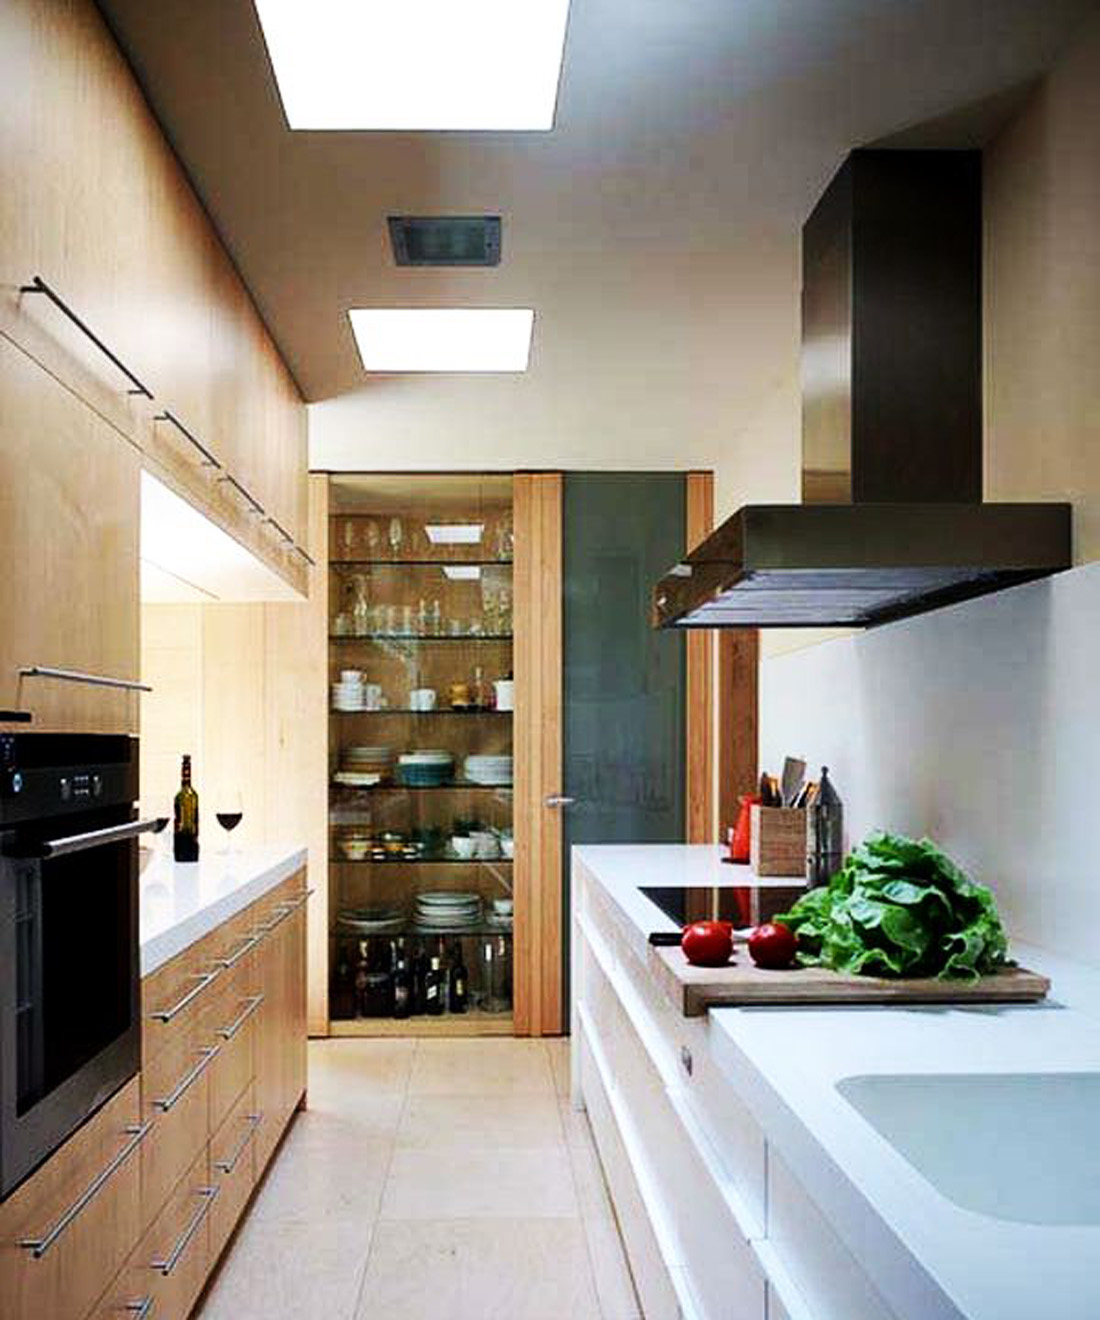 Kitchen Cabinets Small Space: 25 Modern Small Kitchen Design Ideas